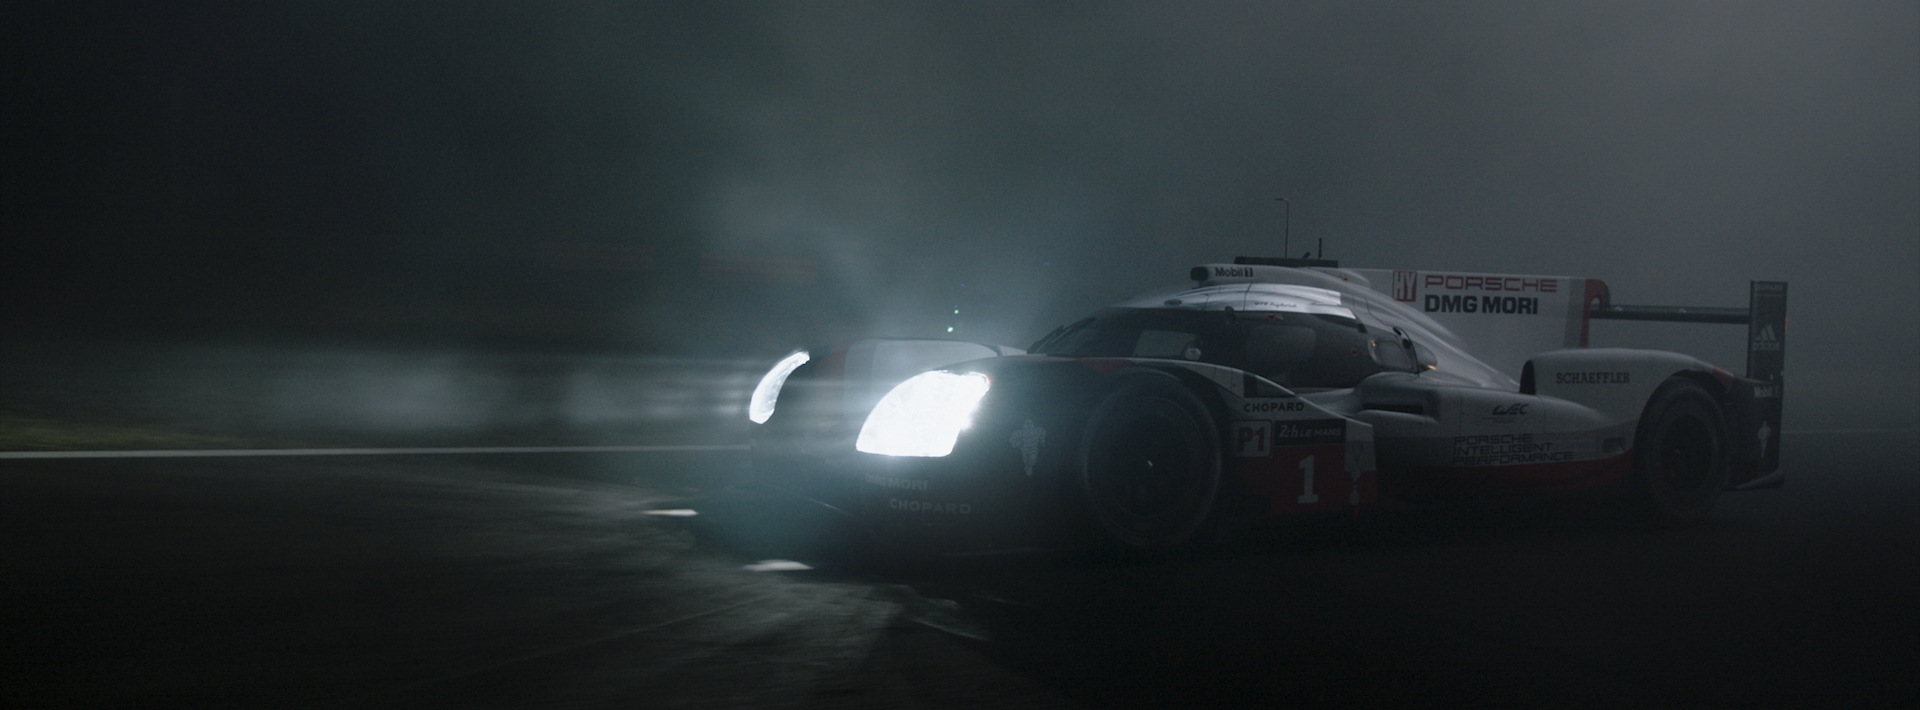 Porsche_E-Performance_Dir_Cut_1.1.16.jpg